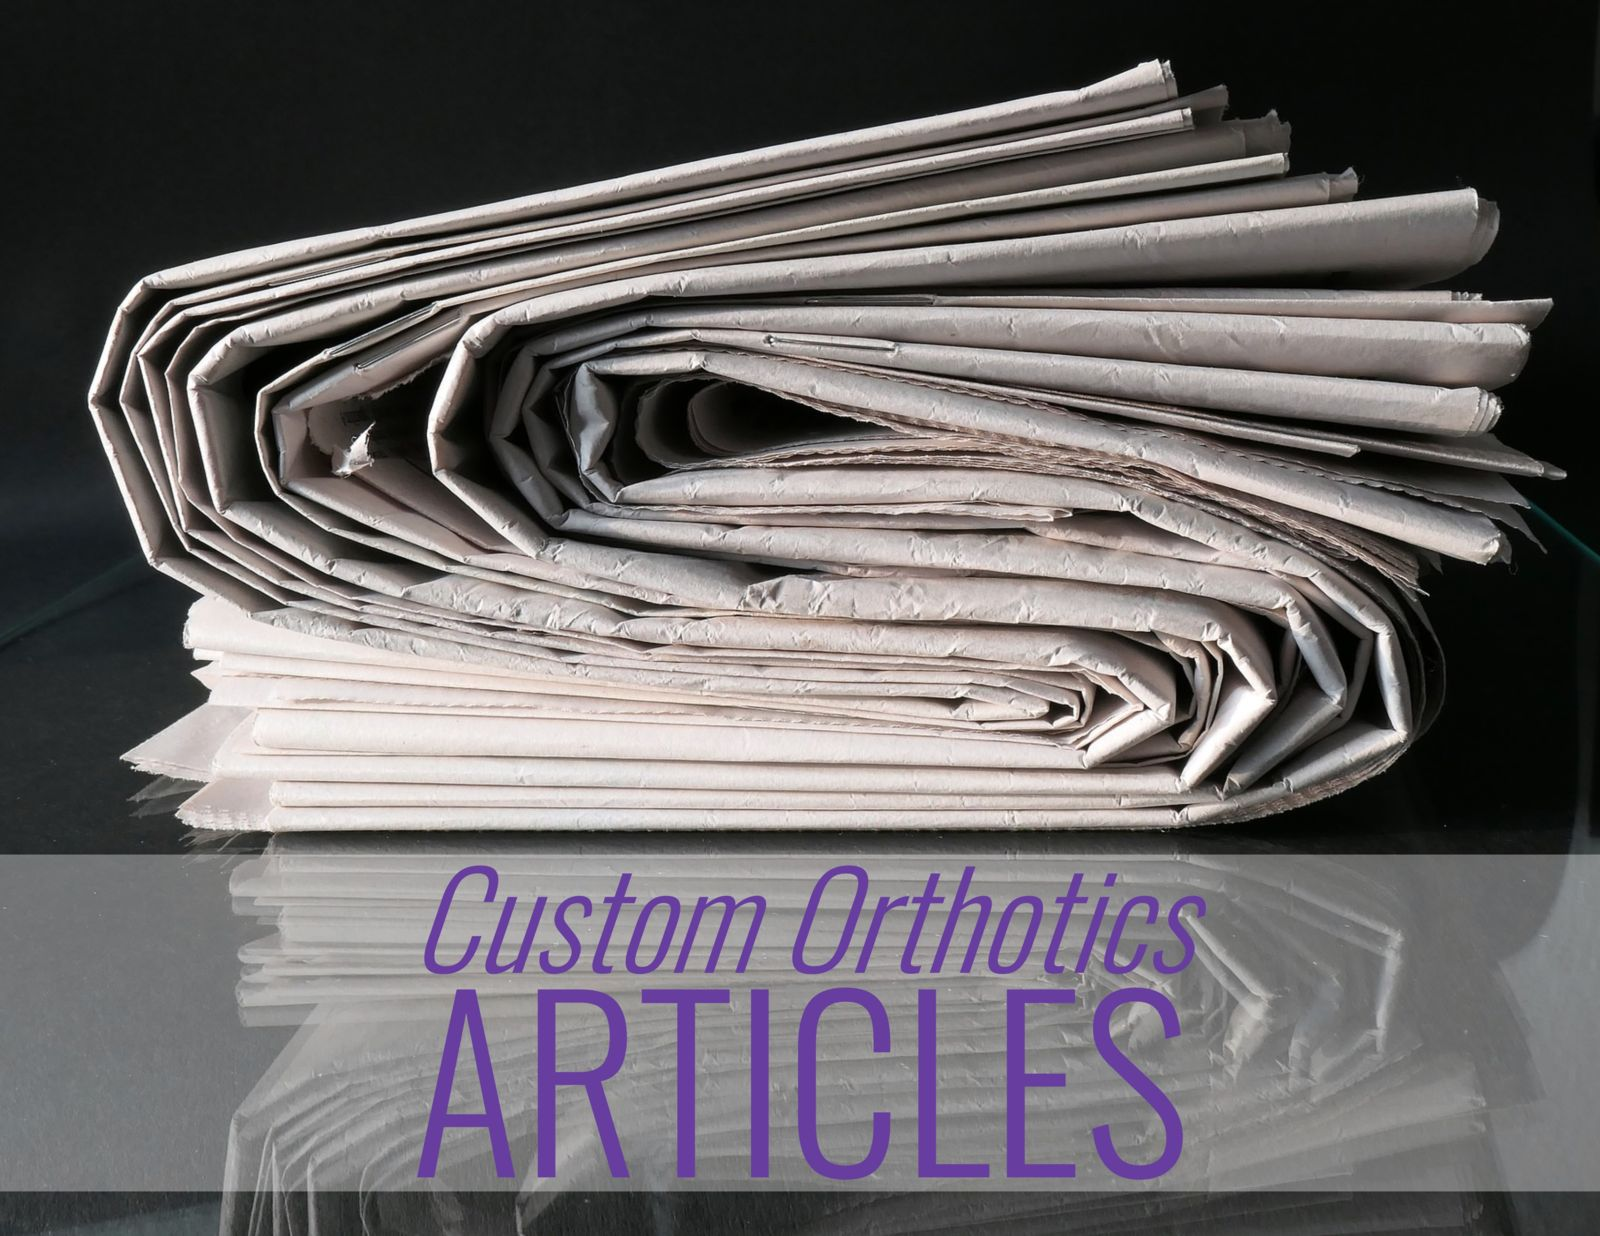 newspapers with the words: Custom Orthotics Articles